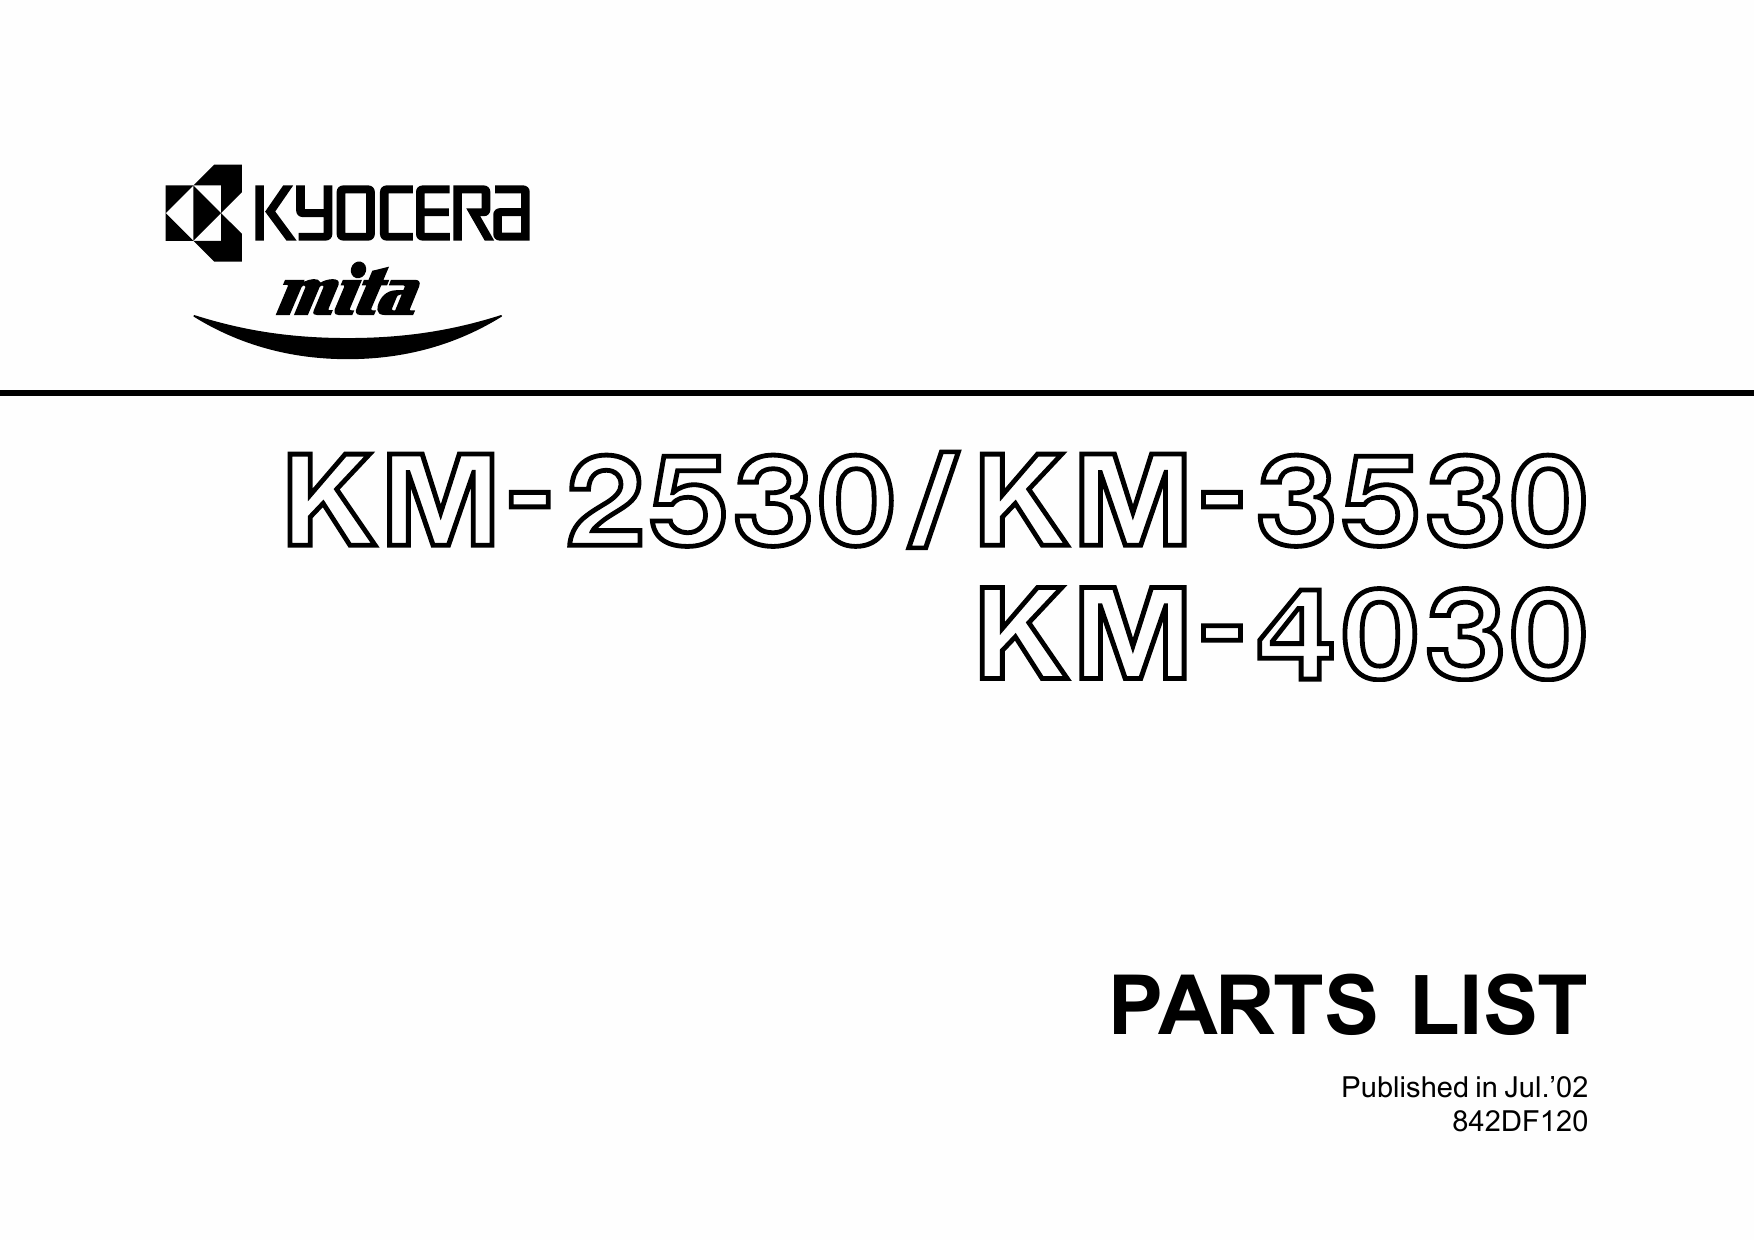 KYOCERA Copier KM-2530 3530 4030 Parts Manual-1